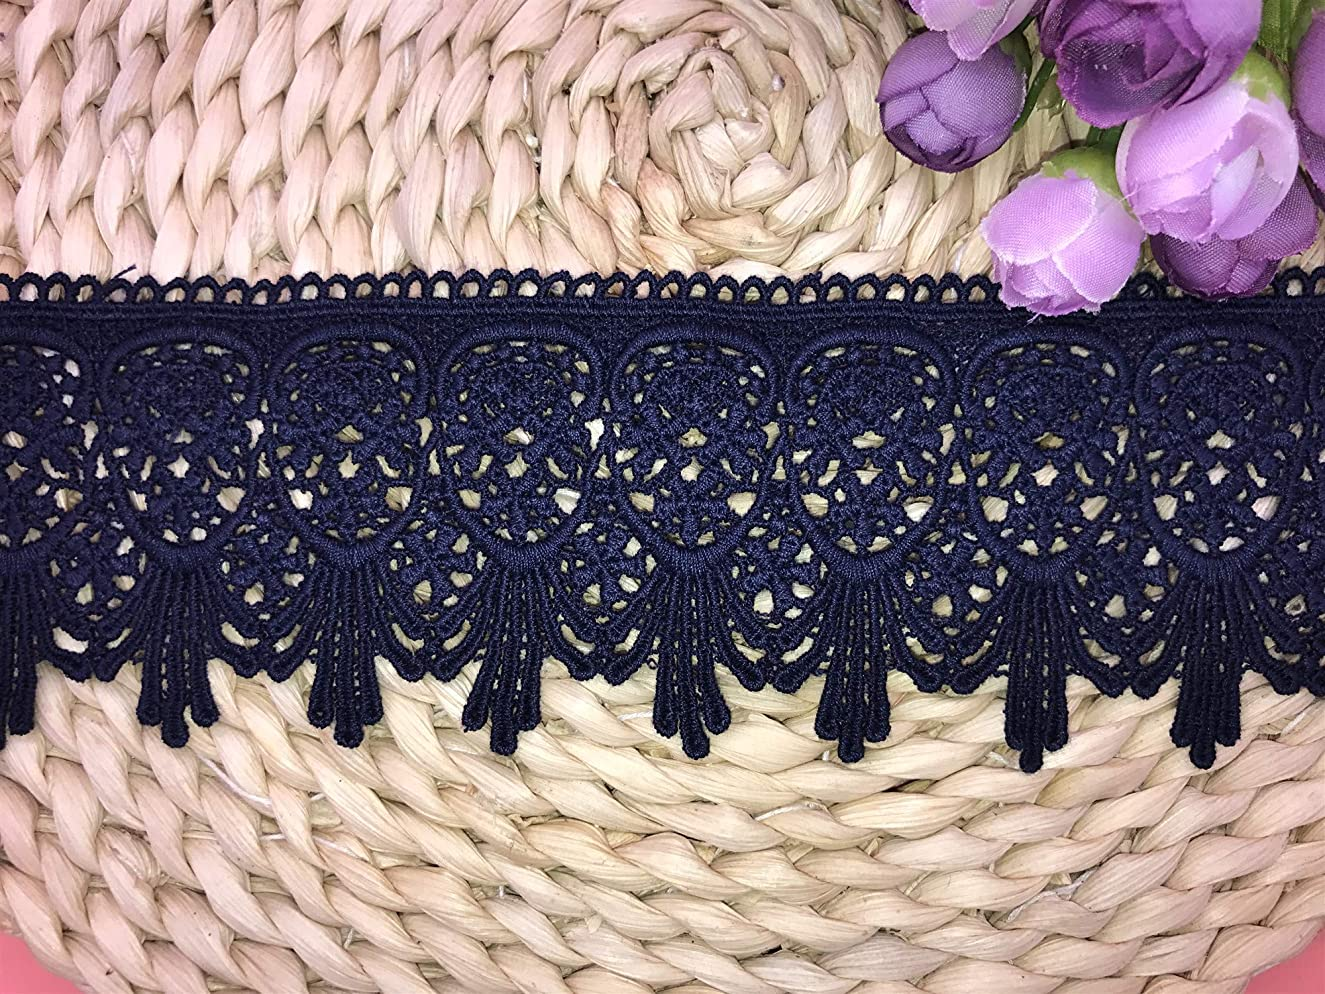 7CM Width Europe Venise Pattern Inelastic Embroidery Lace Trim,Curtain Tablecloth Slipcover Bridal DIY Clothing/Accessories.(2 Yards in one Package) (Navy Blue)